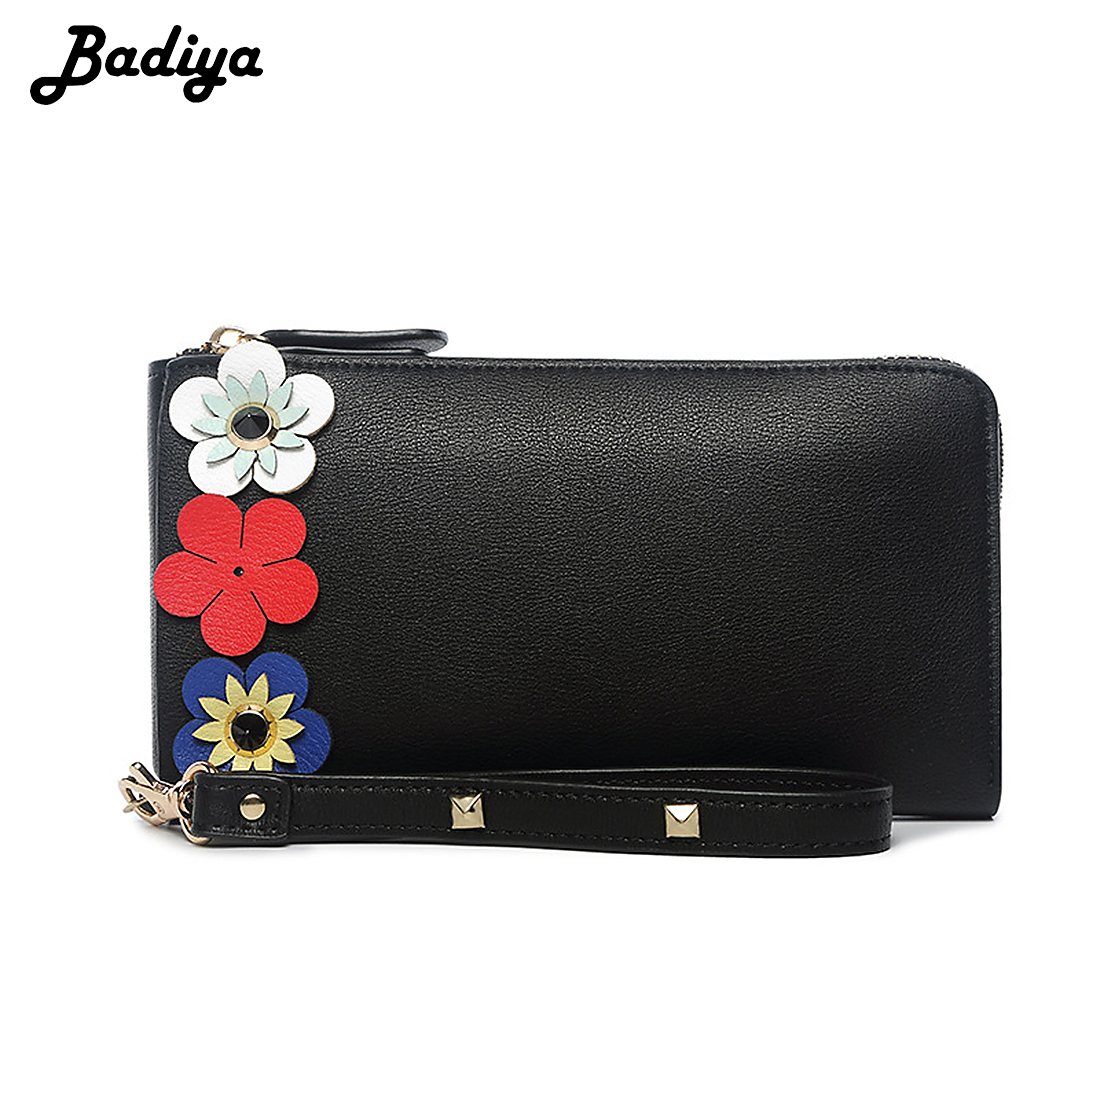 Women Fashion 3D Flower PU Leather Long Wallet Large Capacity Purse with Wrist Strap